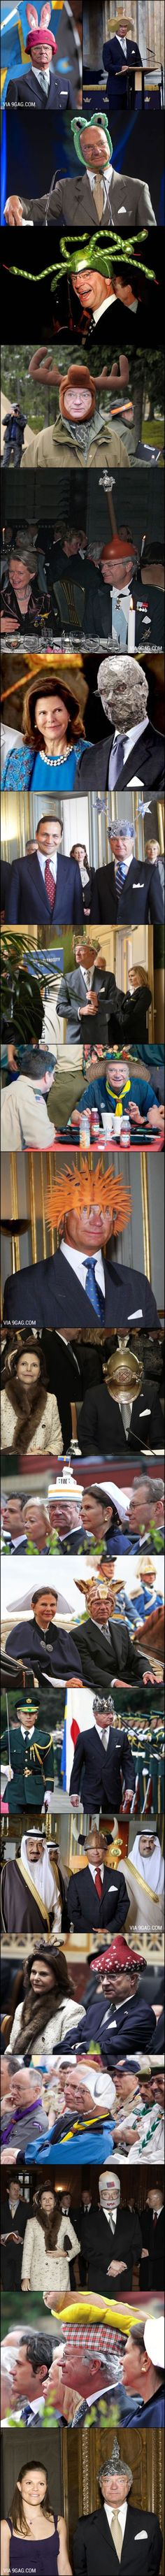 We can all agree that King Gustaf of Sweden is hilarious. Haha